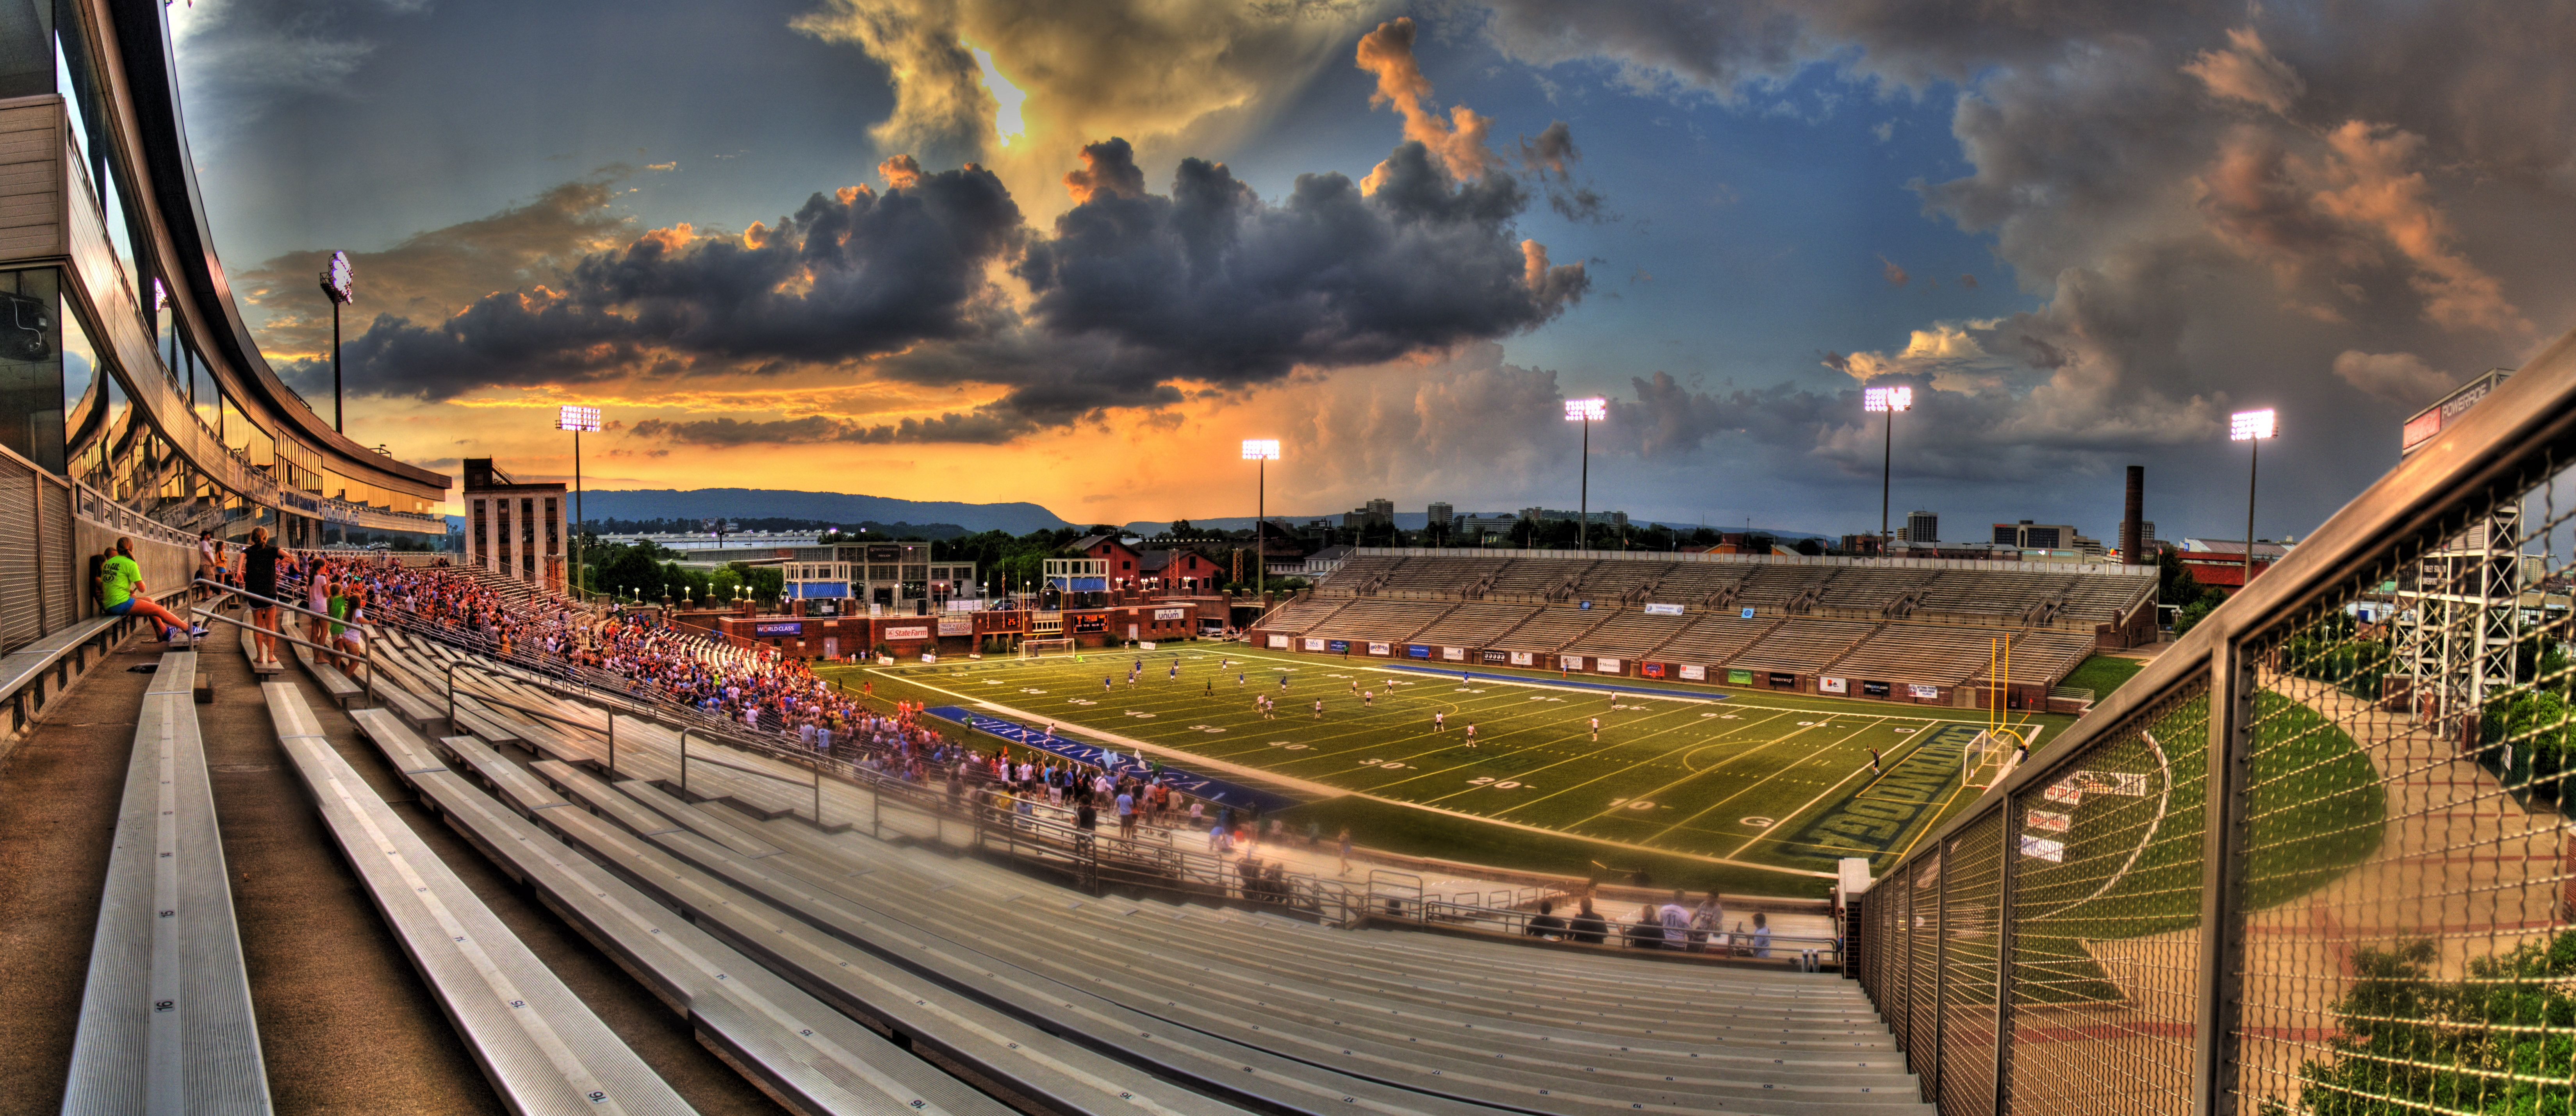 Finley Stadium, Chattanooga, TN. Home of the University of